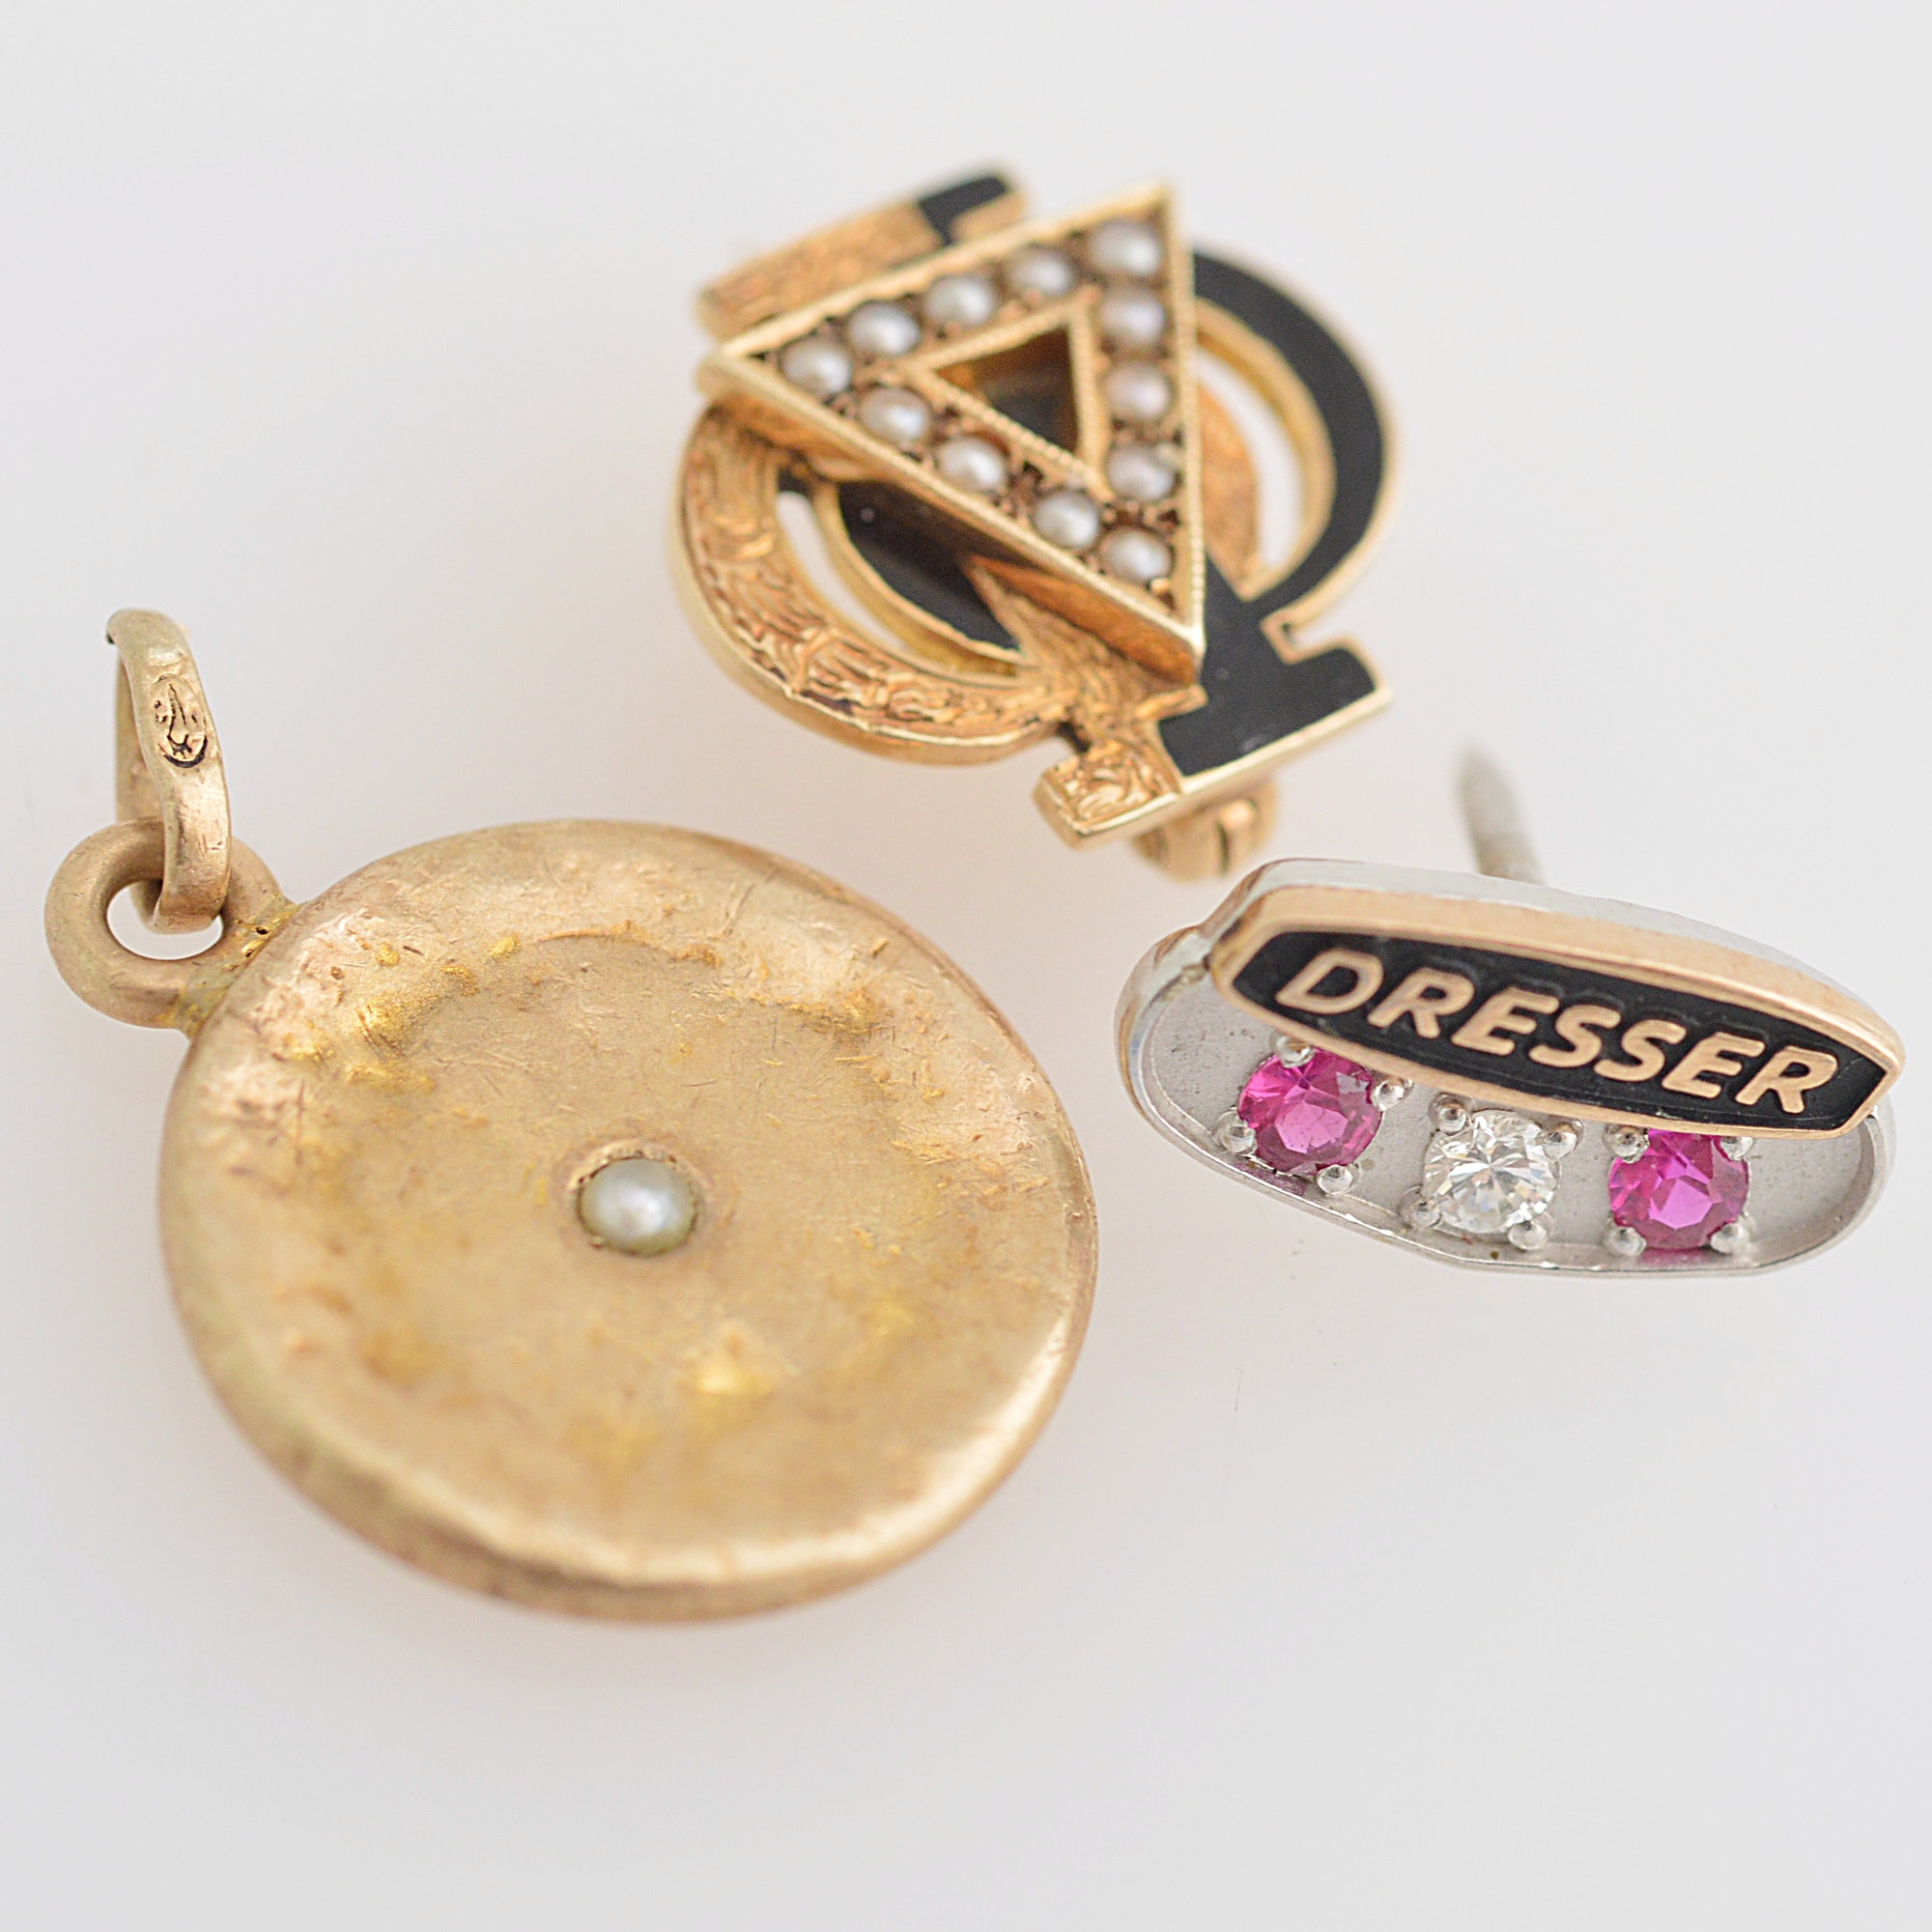 Vintage 10K and 14K Gold, Synthetic Ruby, Diamond Pendant and Pins